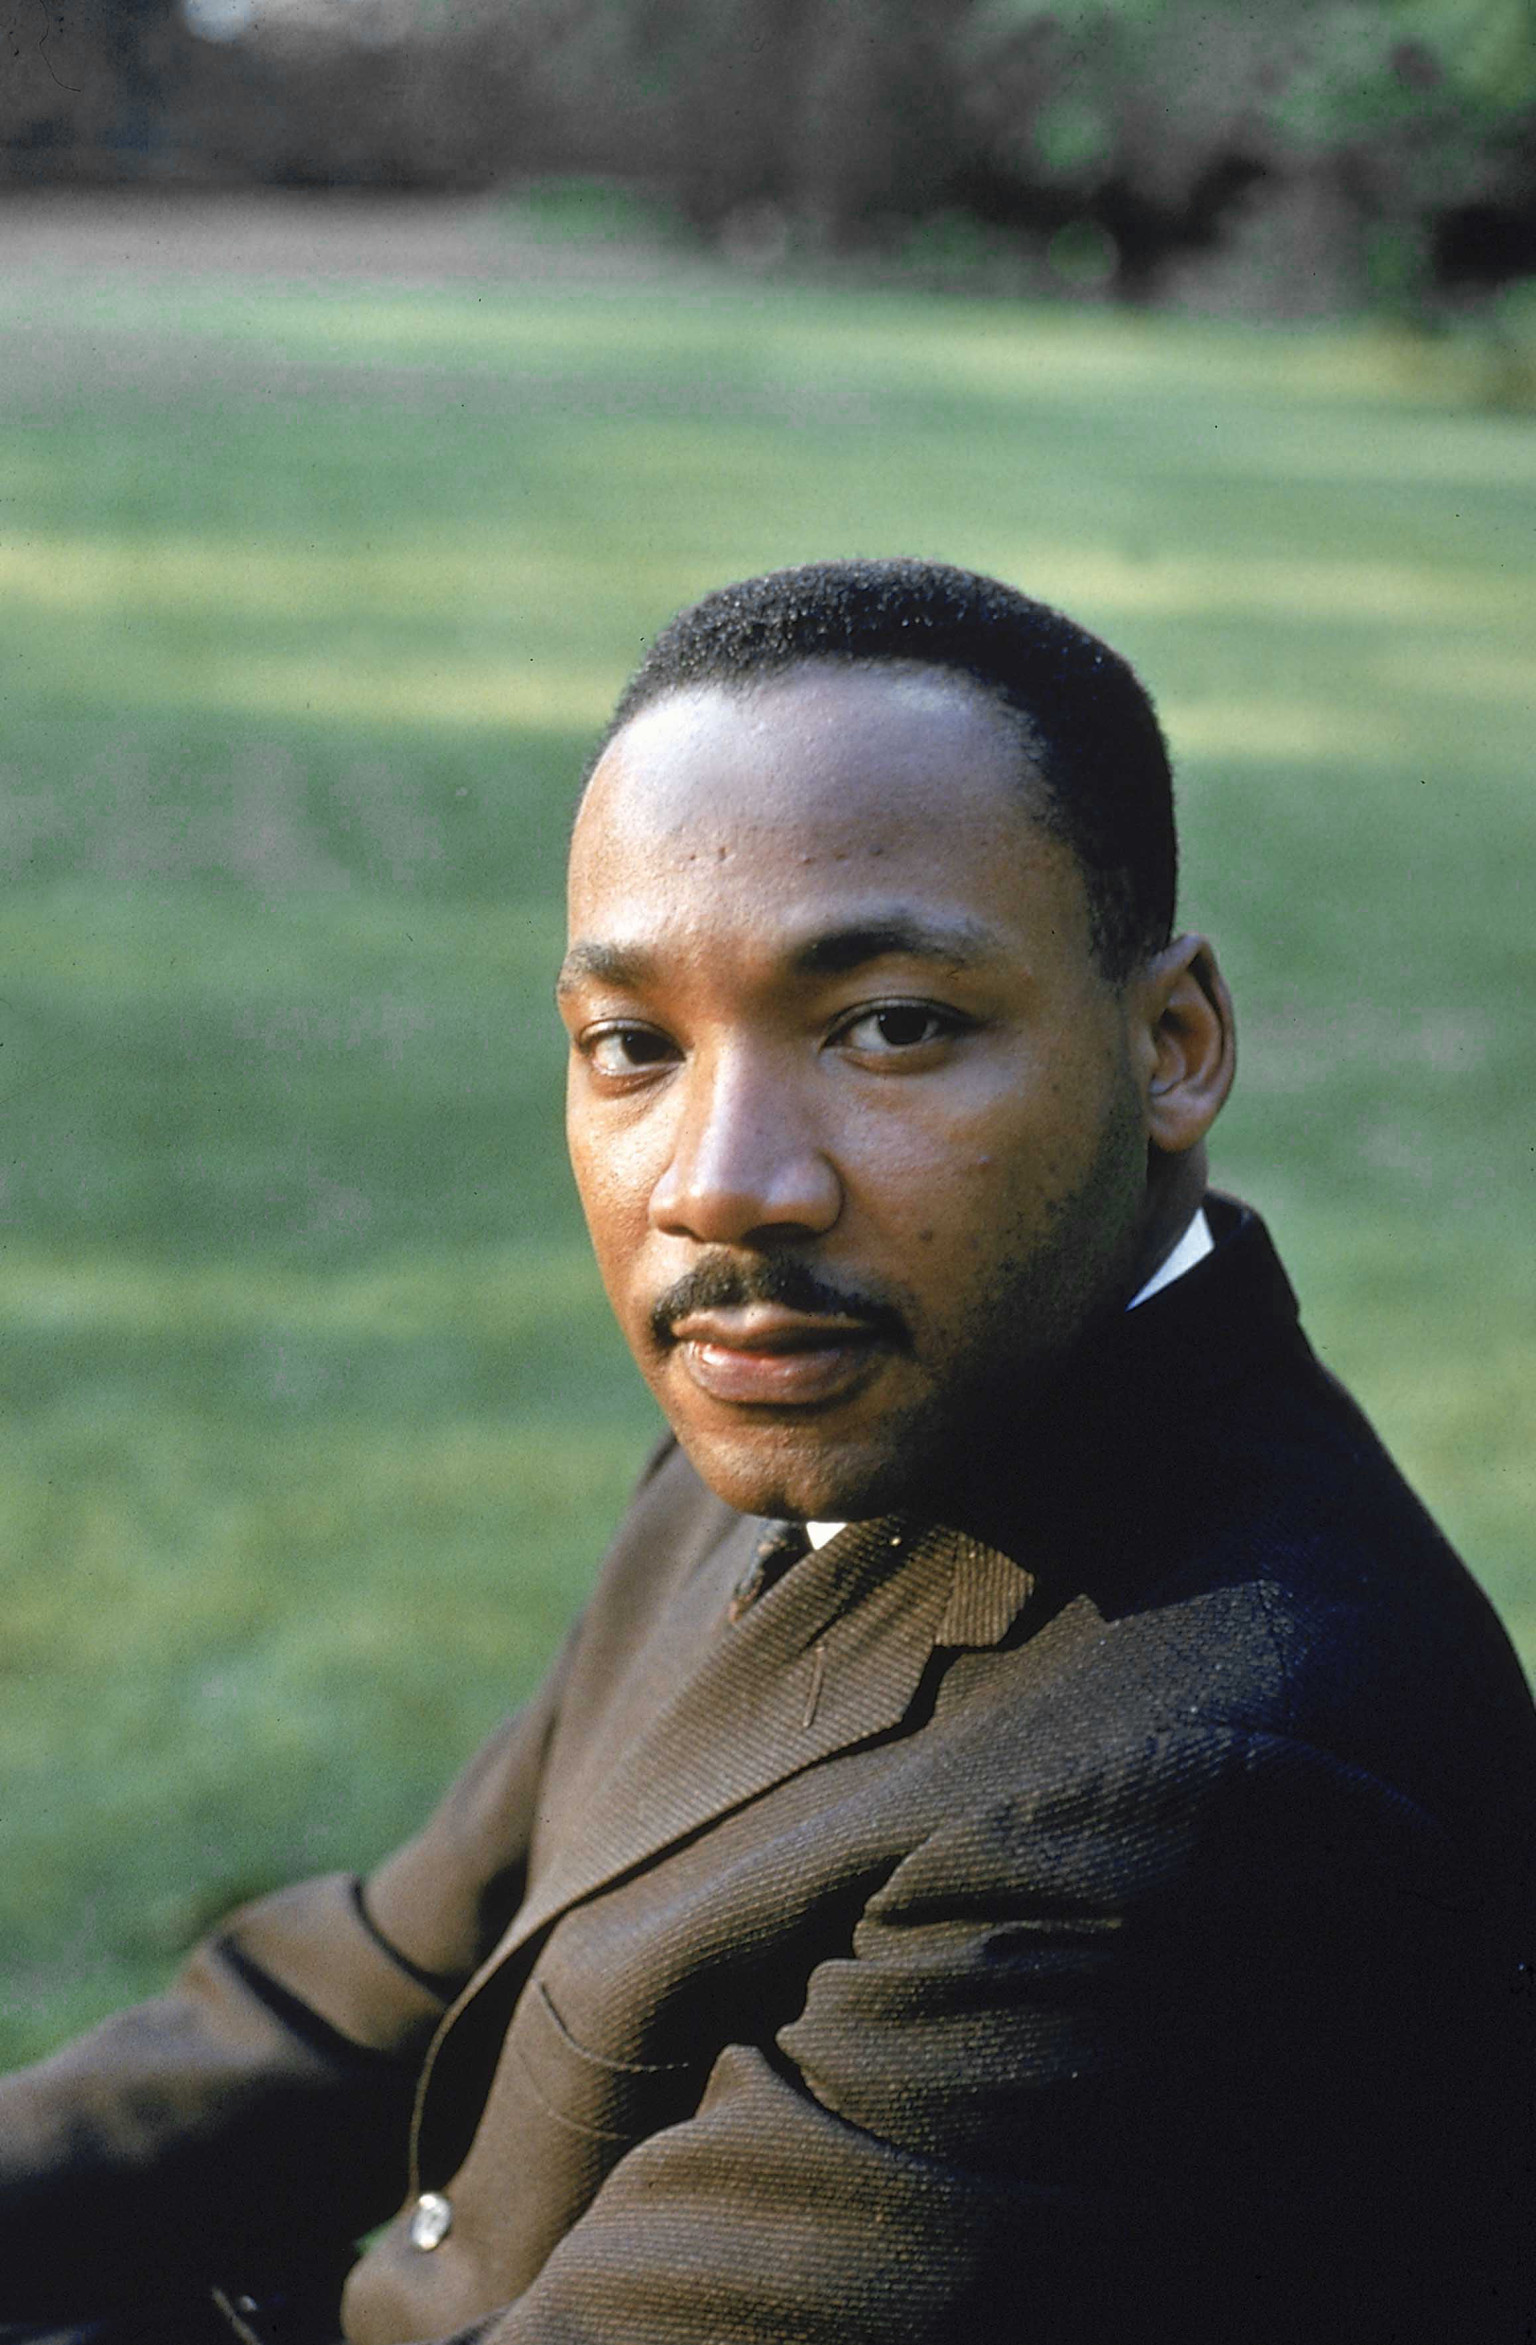 martin luther king - photo #14